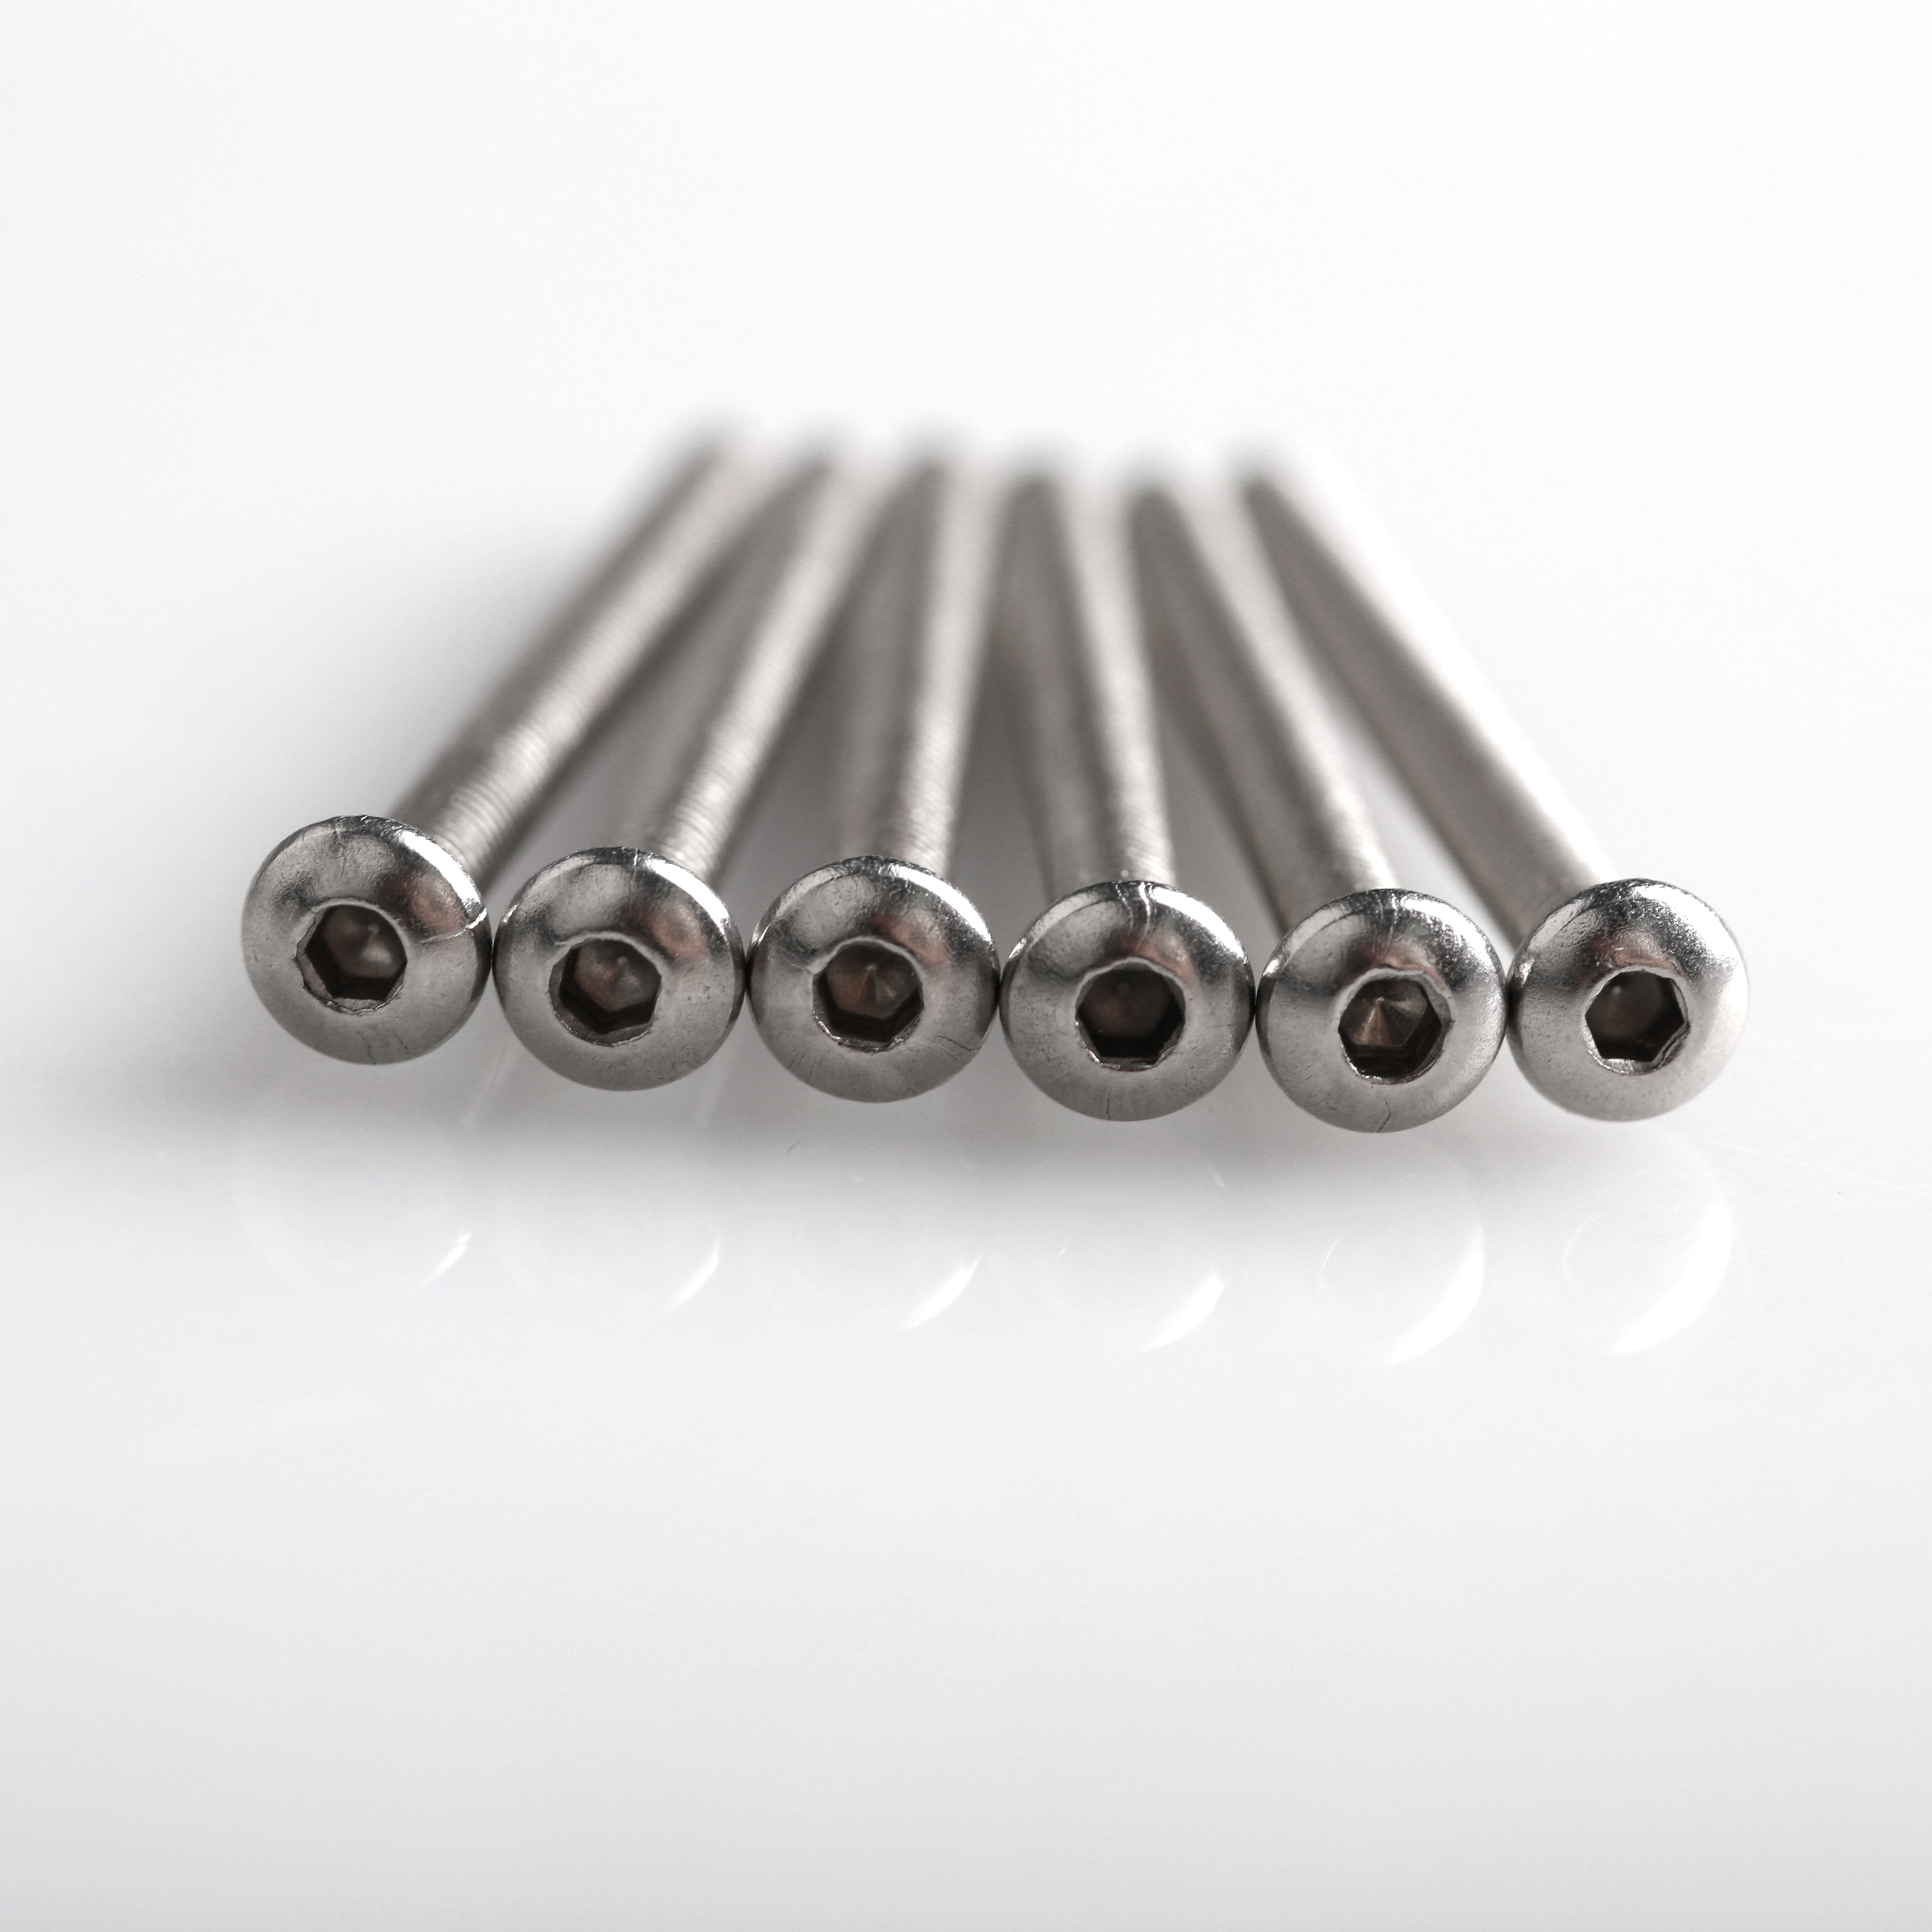 M3 button stainless steel screw